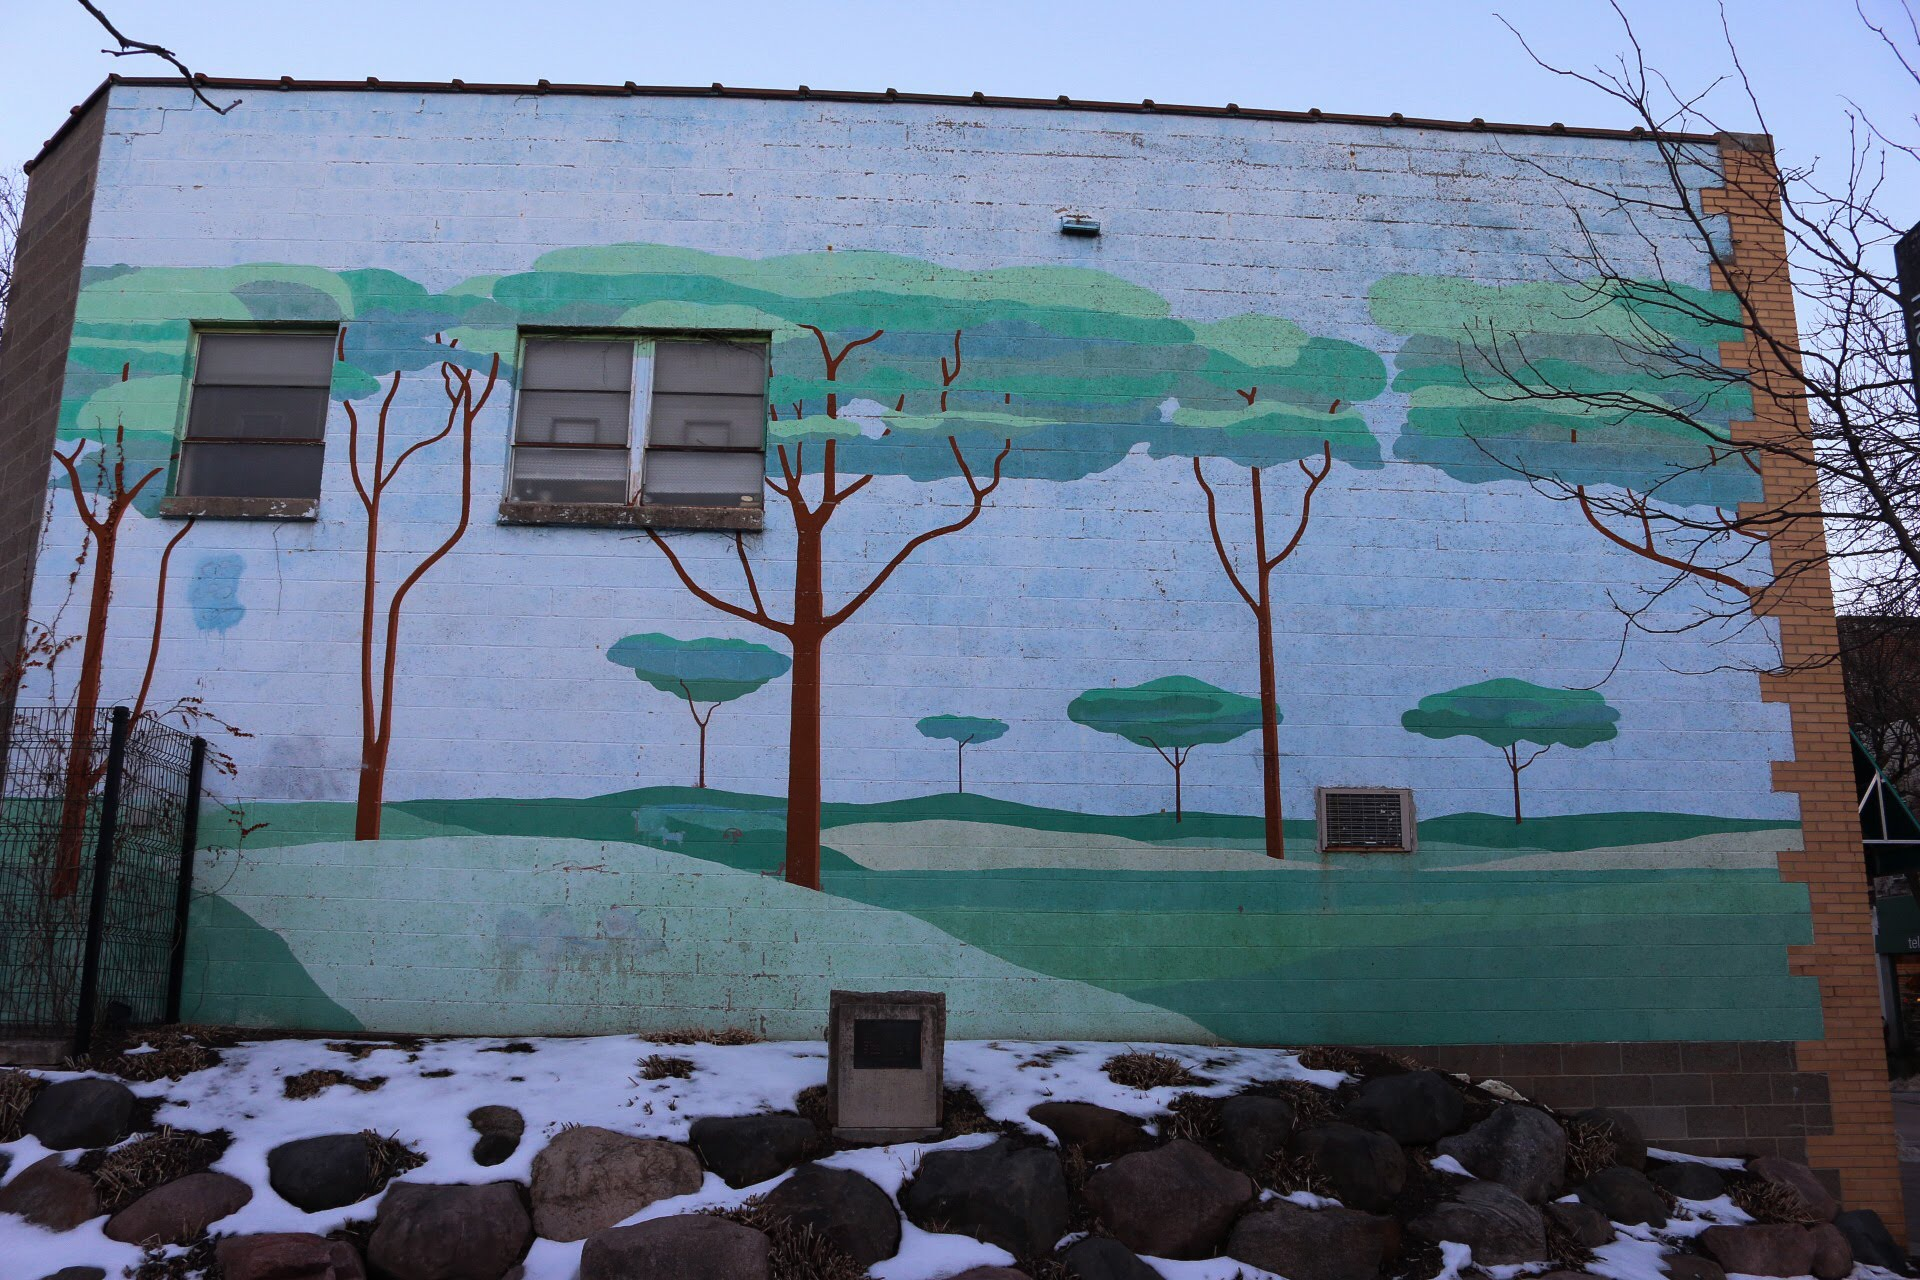 A mural of Matisse-esque trees overlooks Lisa Link Peace Park in downtown Madison.